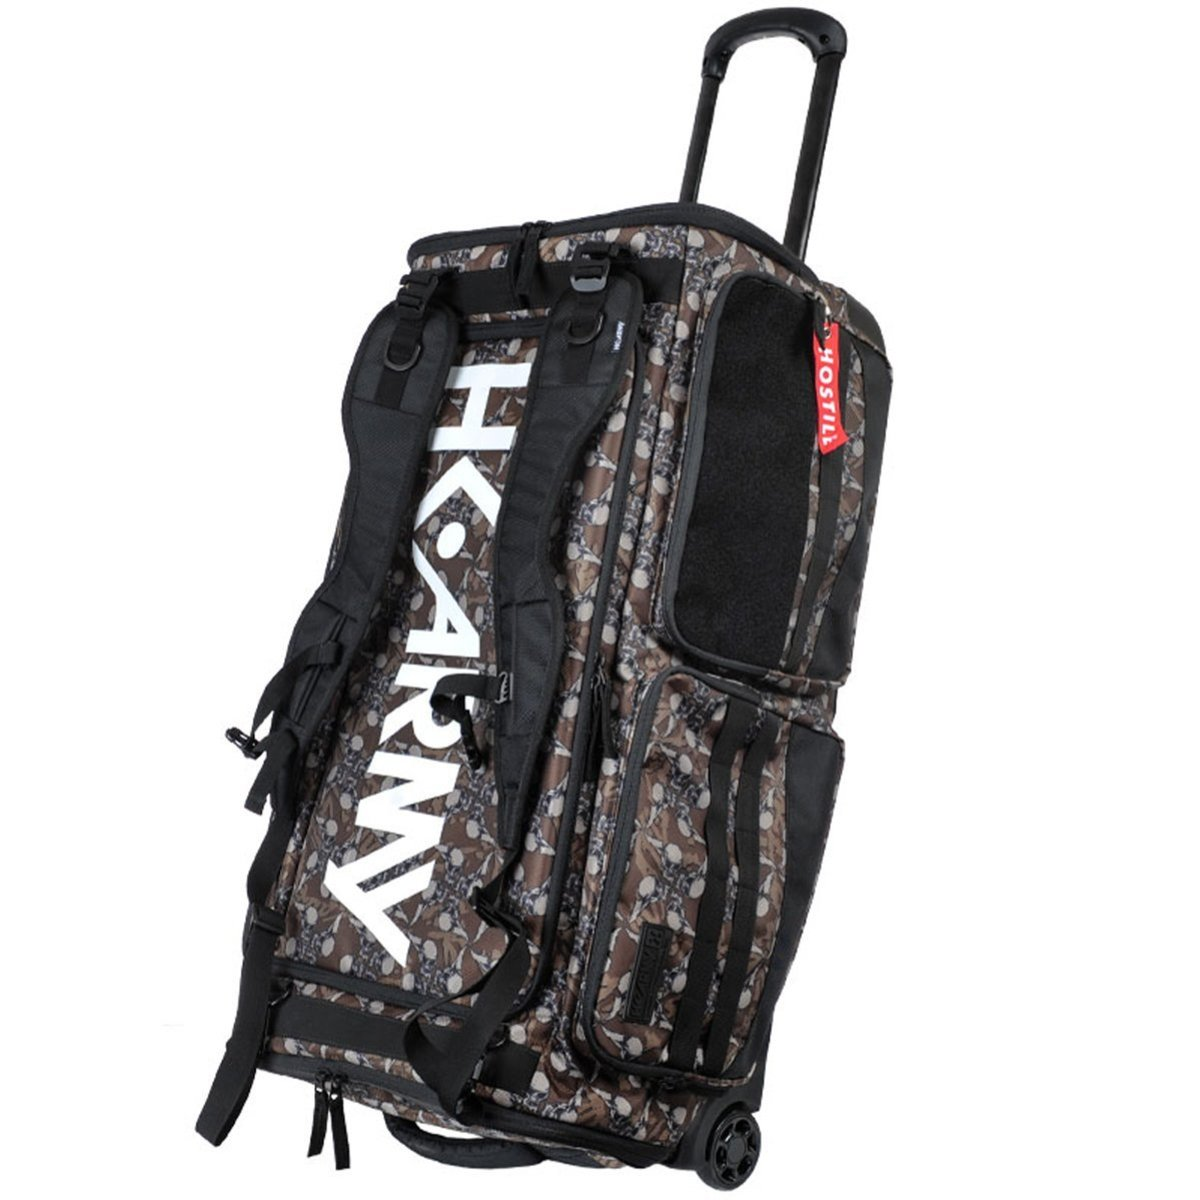 View larger image of HK Army Expand Roller Paintball Gear Bag